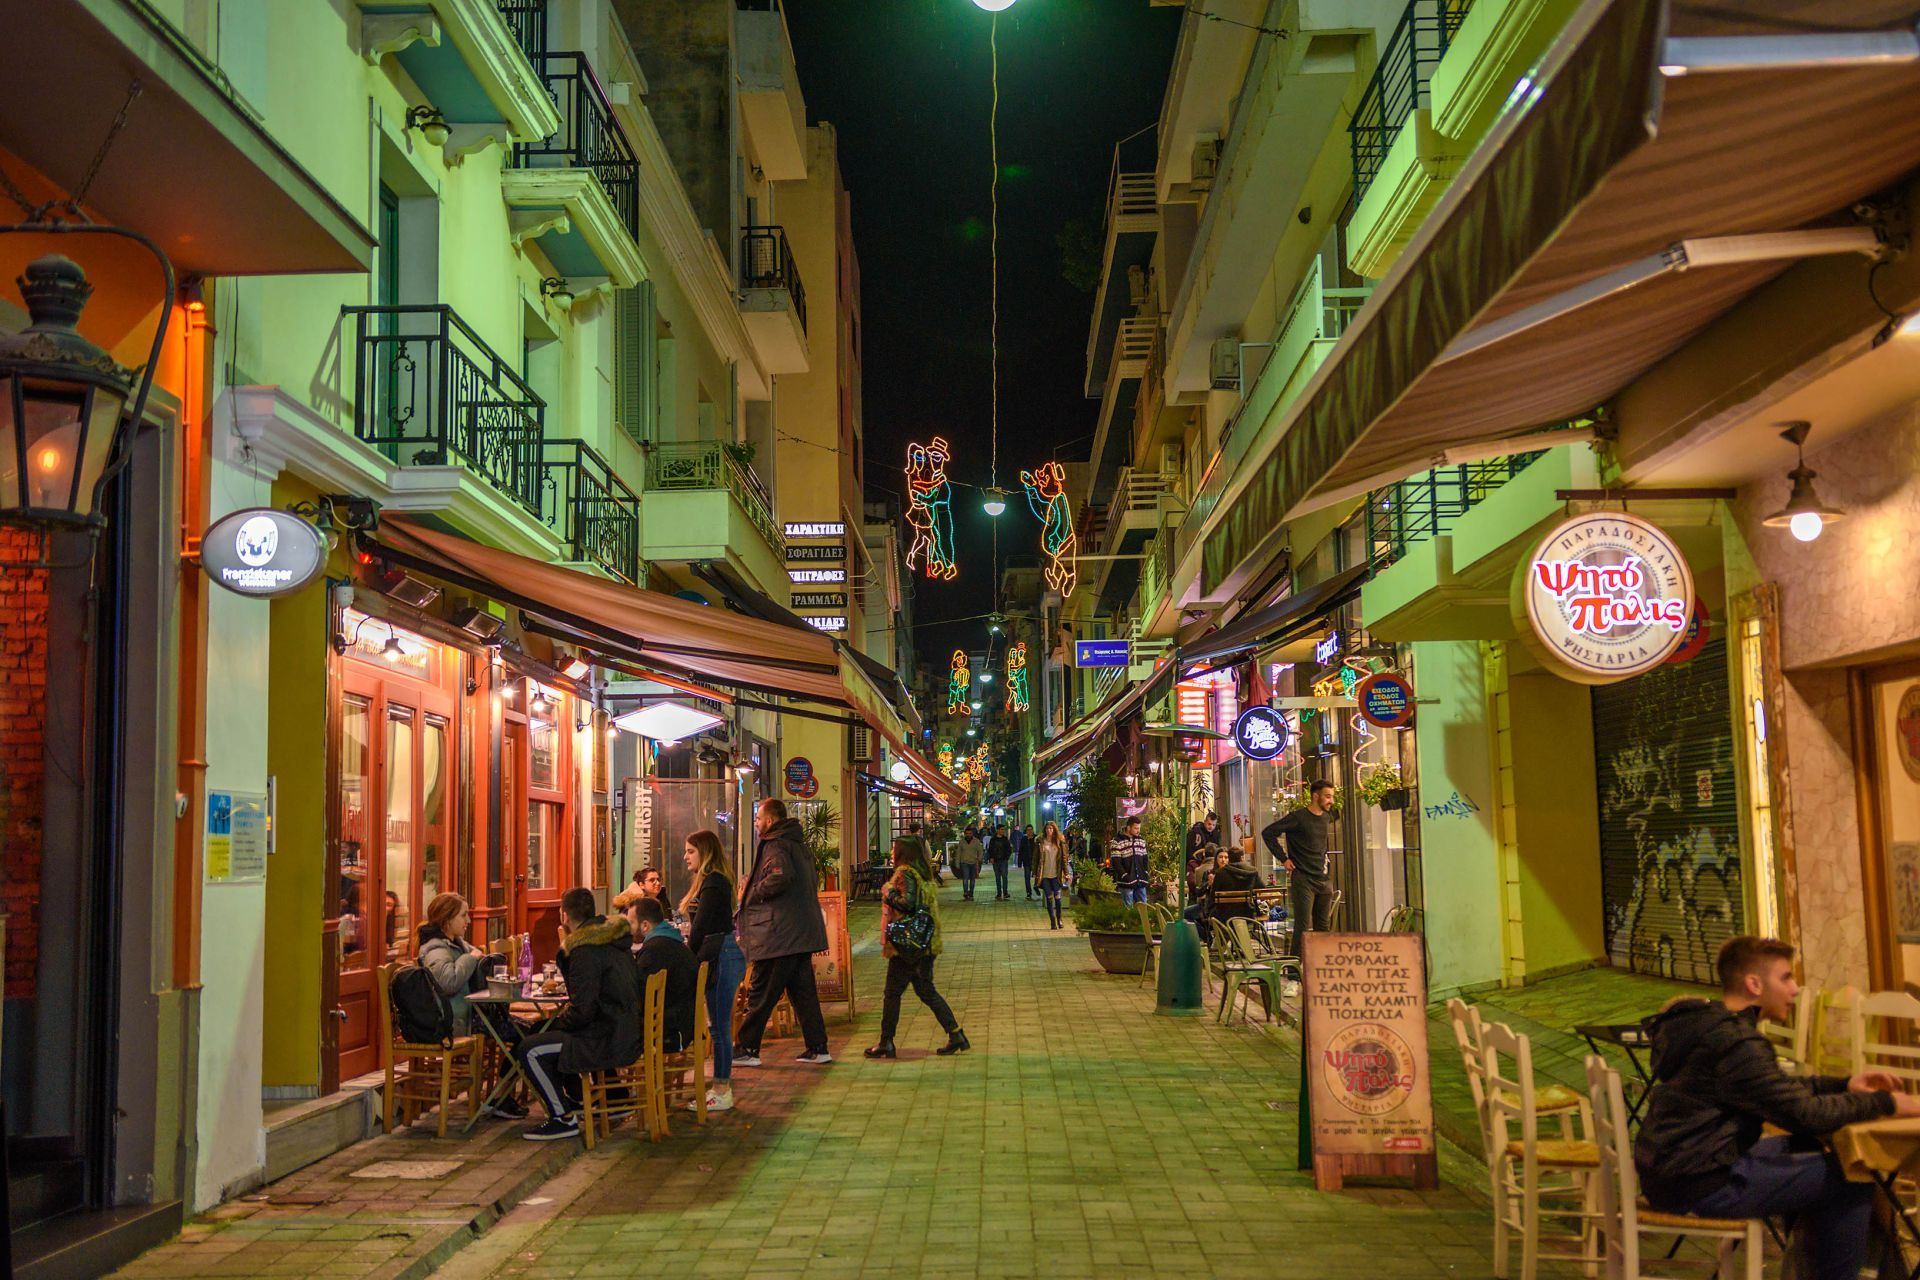 Places to eat and drink in Patra